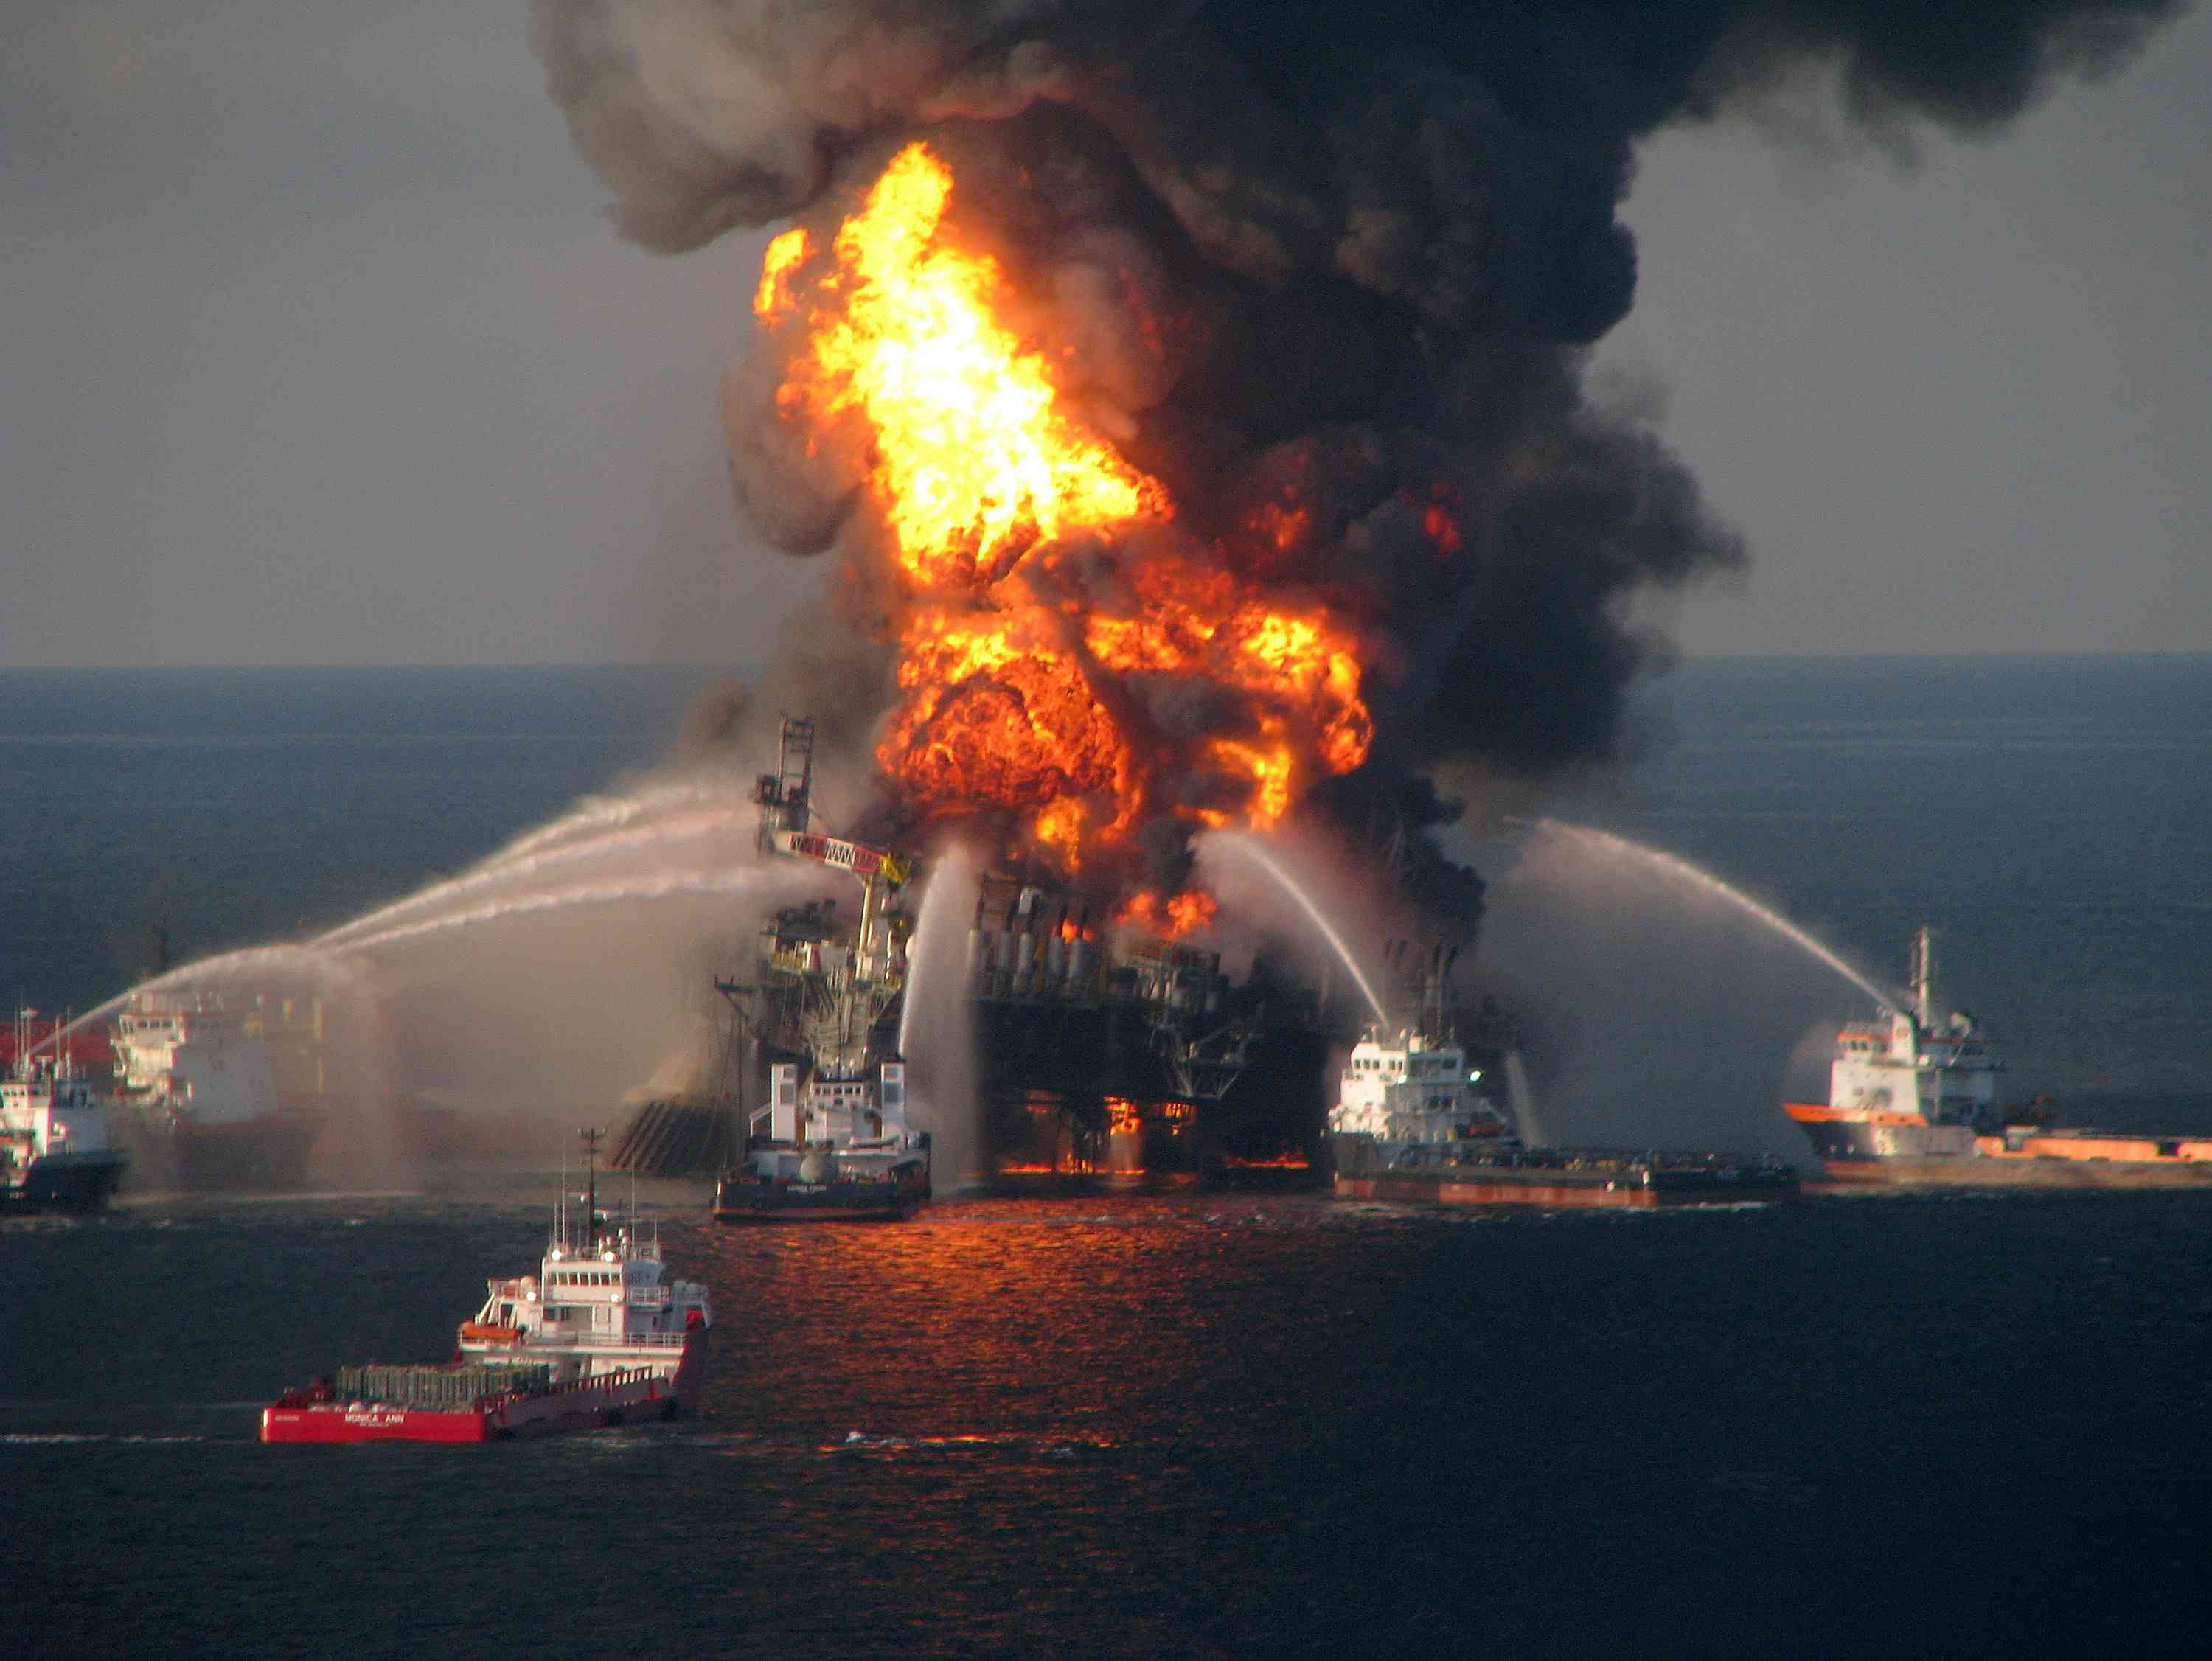 Coast Guard fighting an oil rig fire